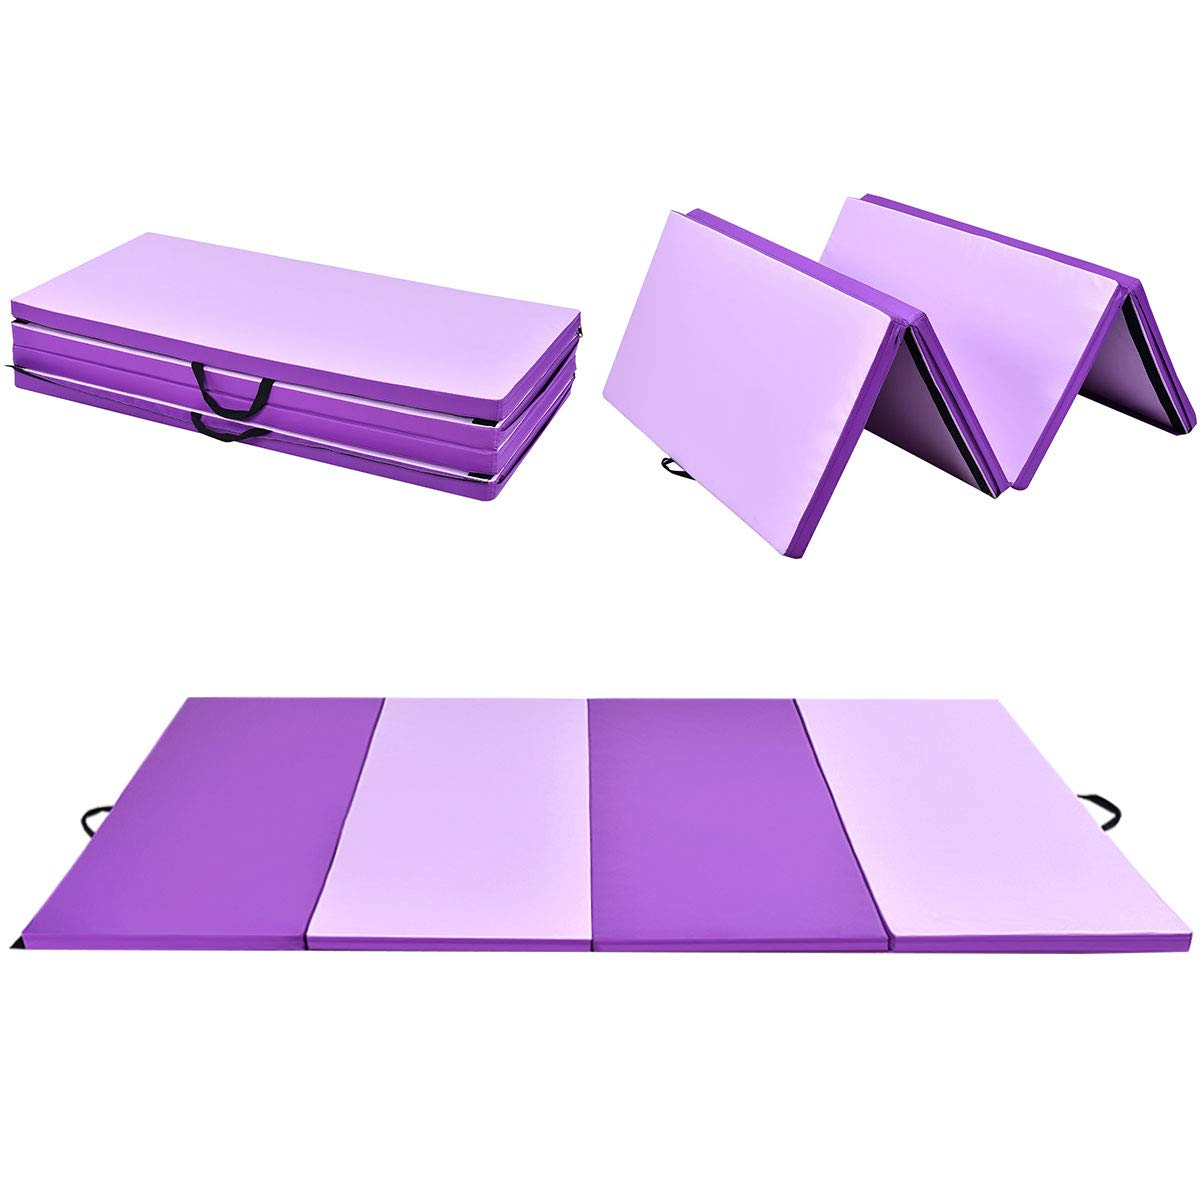 Giantex 4'x8'x2 Gymnastics Mat Thick Folding Panel Gym Fitness Exercise Mat Purple/Pink